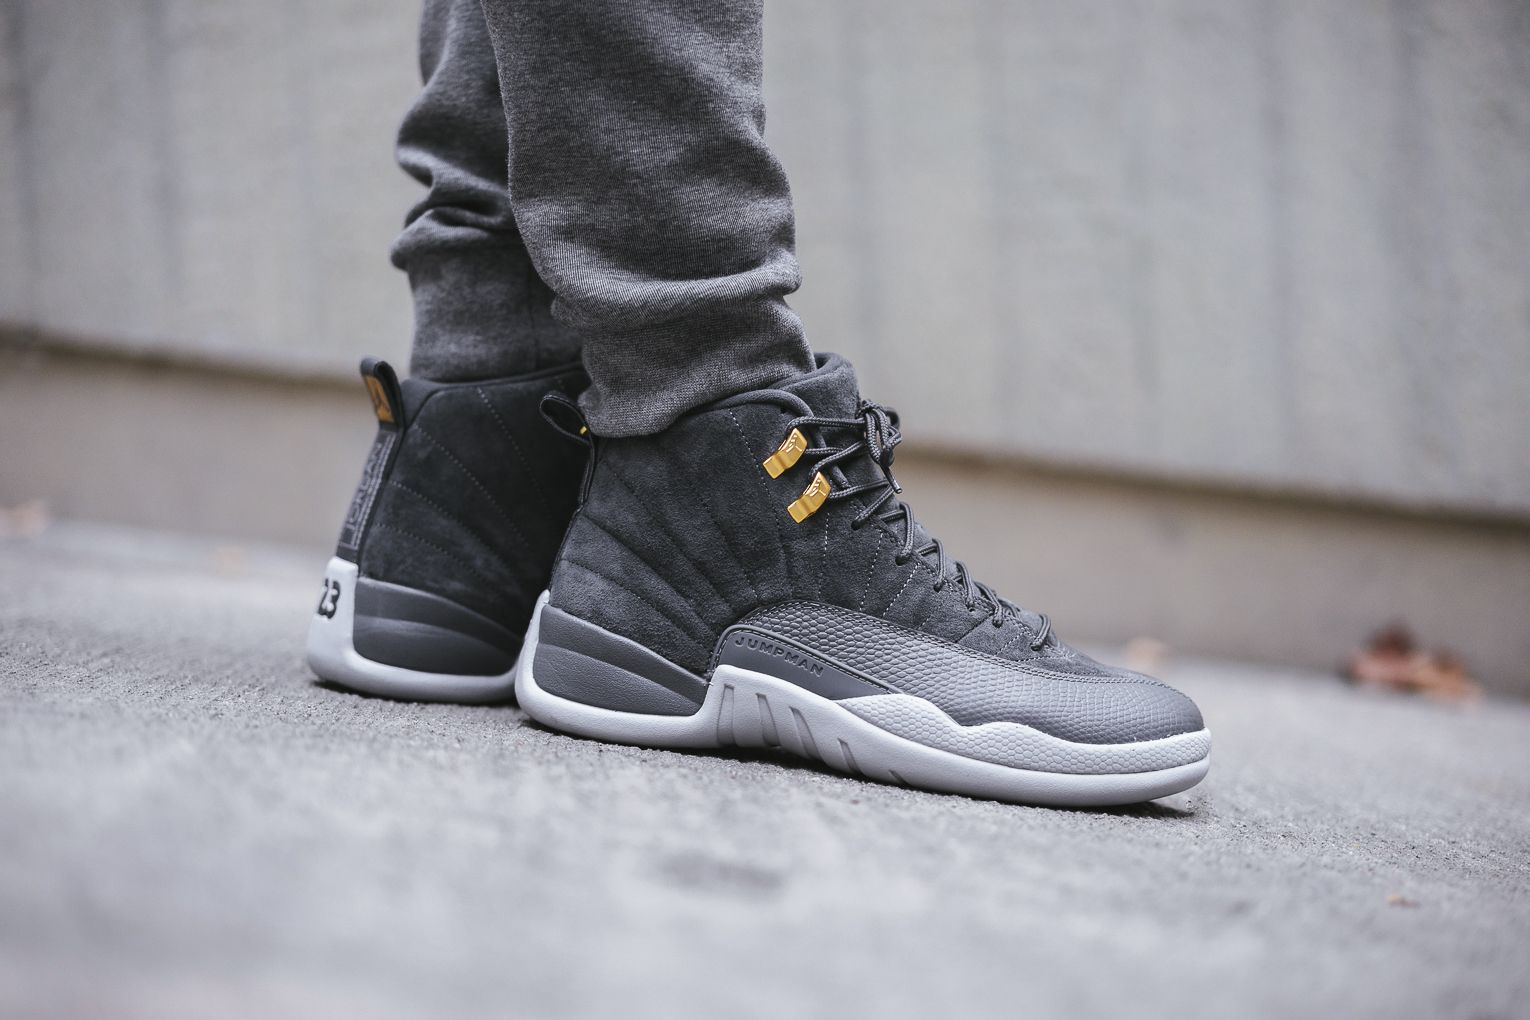 a47804f7c52 Dubbed the Air Jordan 12 Dark Grey, this new colourway has the Jordan's  12th signature dressed in an all Grey suede upper. Premium .